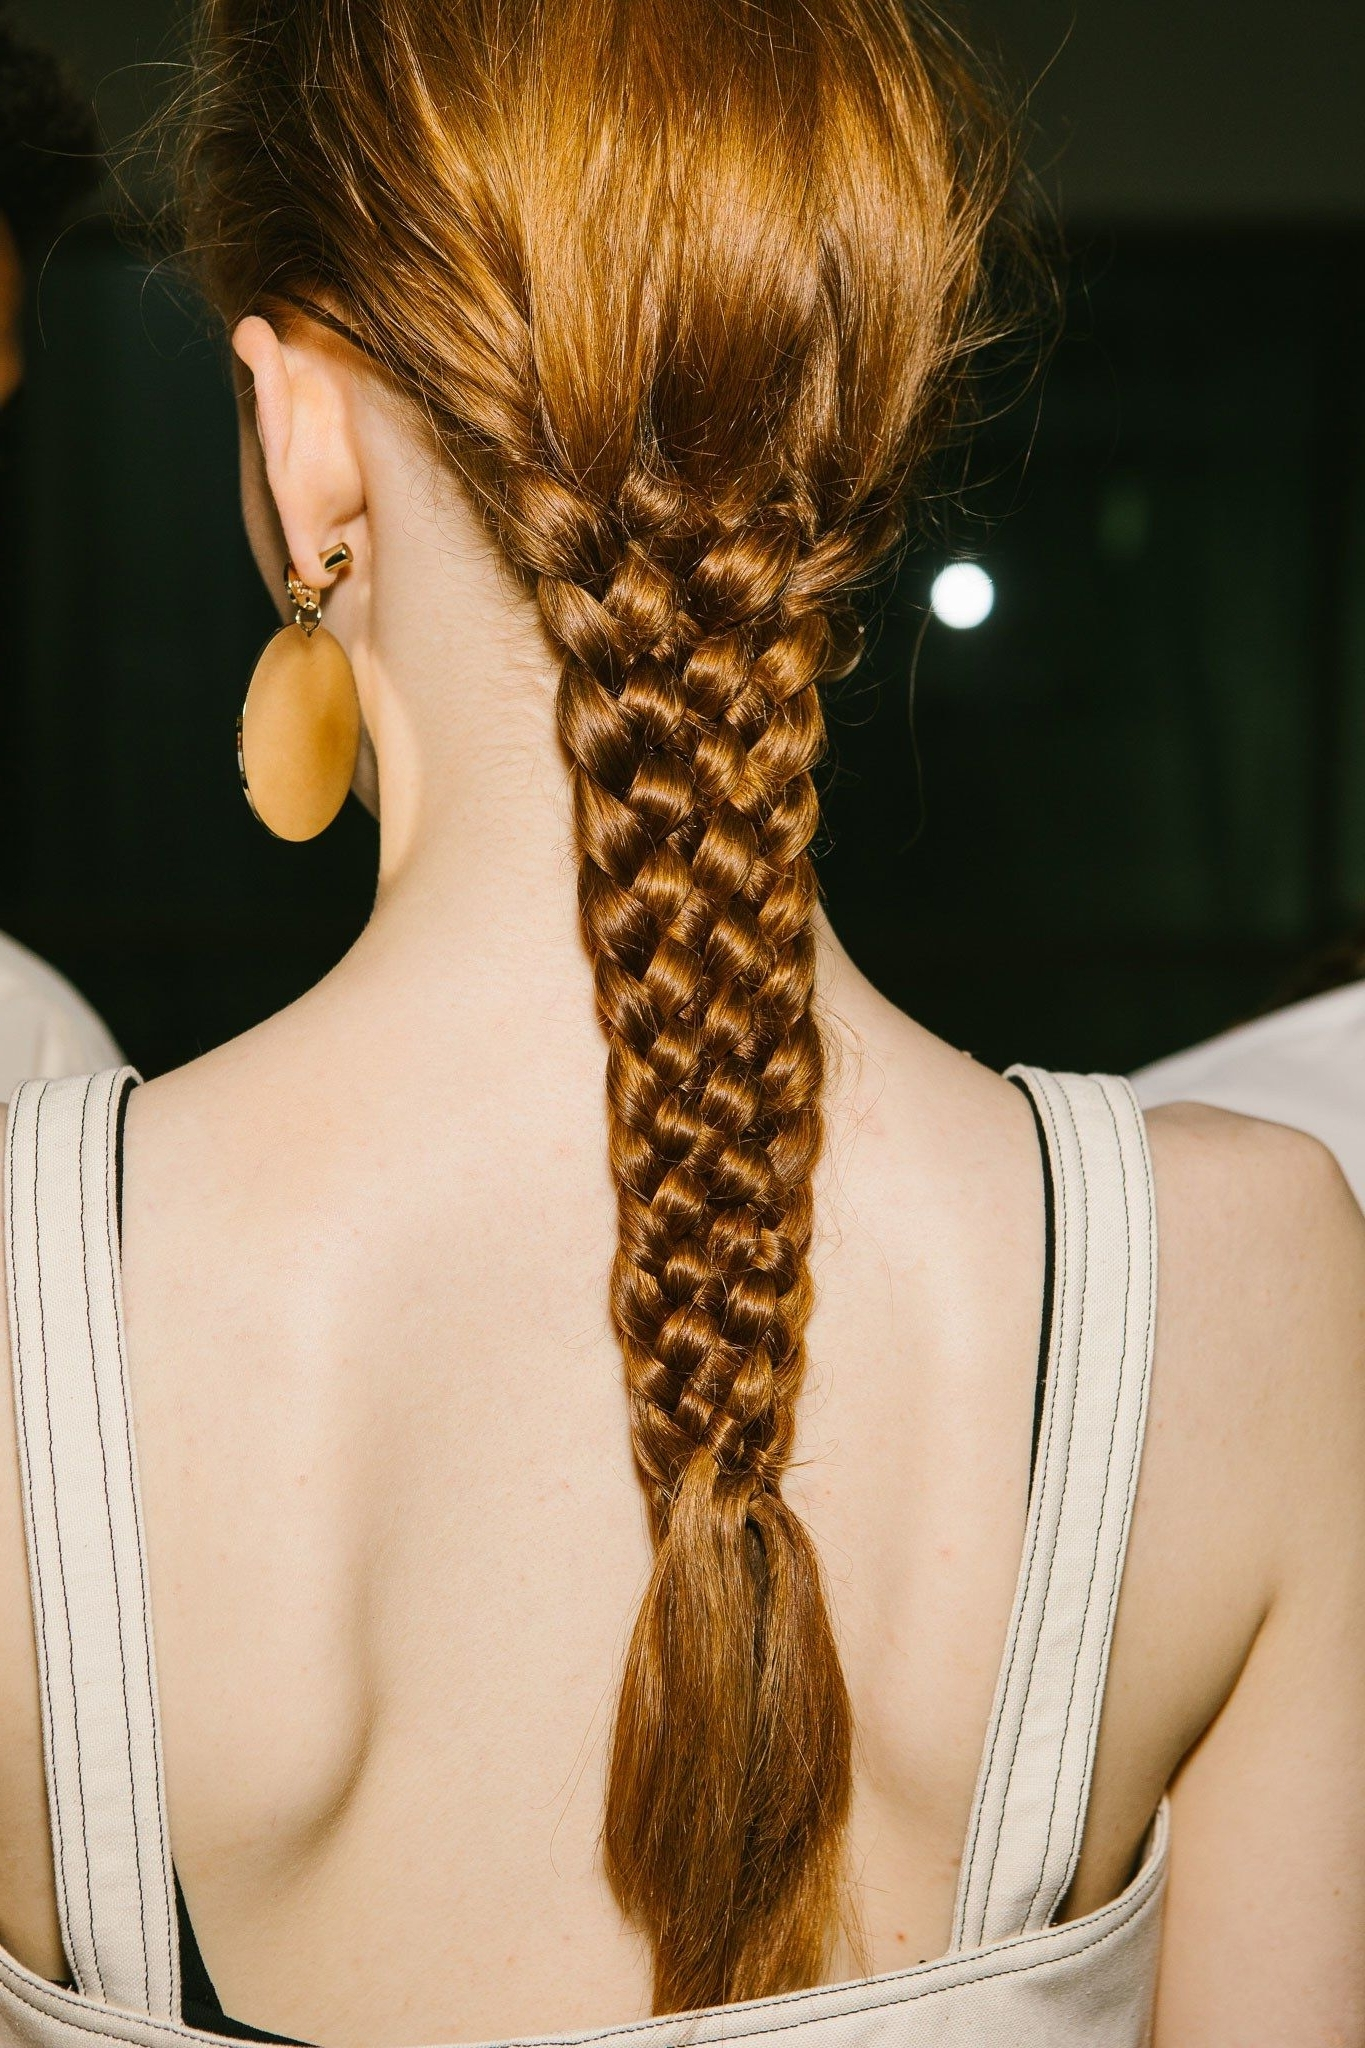 Well Known Brunette Macrame Braid Hairstyles With Jil Sander Just Won The Braid Game (View 9 of 20)